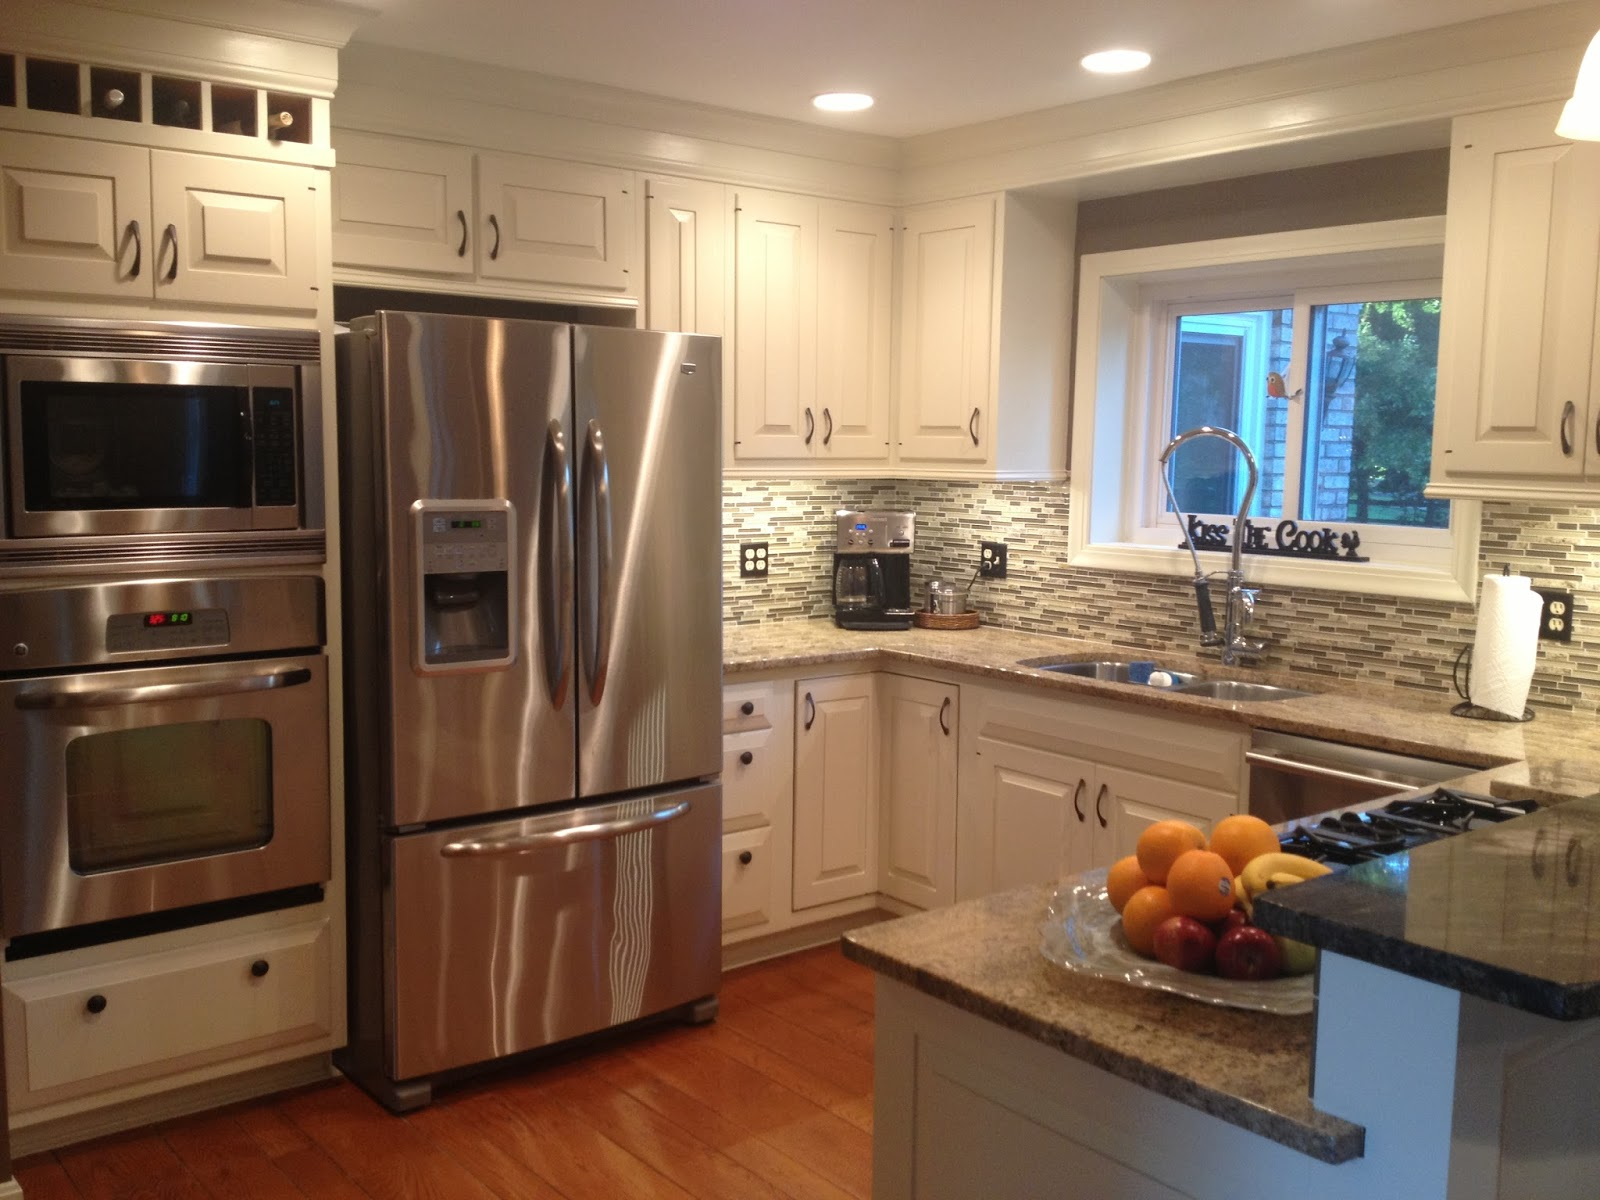 Four seasons style the new kitchen remodel on a budget for New ideas for kitchen cabinets